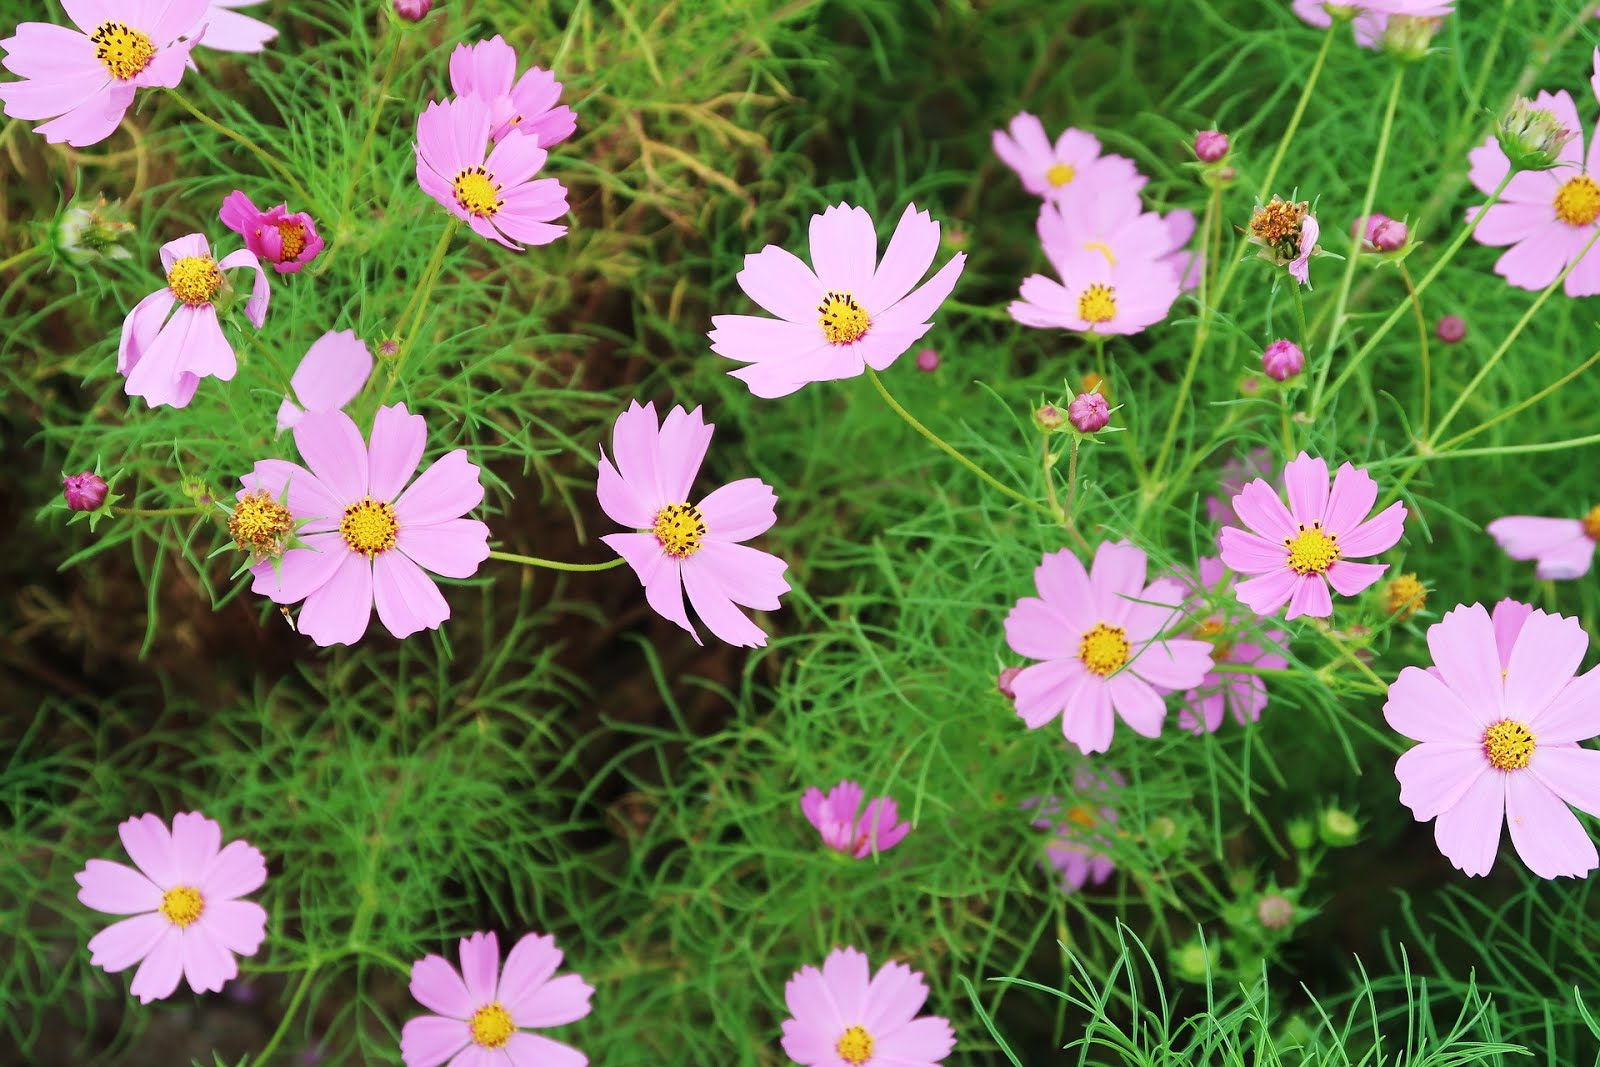 Star nursery blog get the flower garden of your dreams cosmos is a delicate fernlike plant with large bright daisy like flowers in shades of pink purple white or lavender it frequently reaches 3 feet in izmirmasajfo